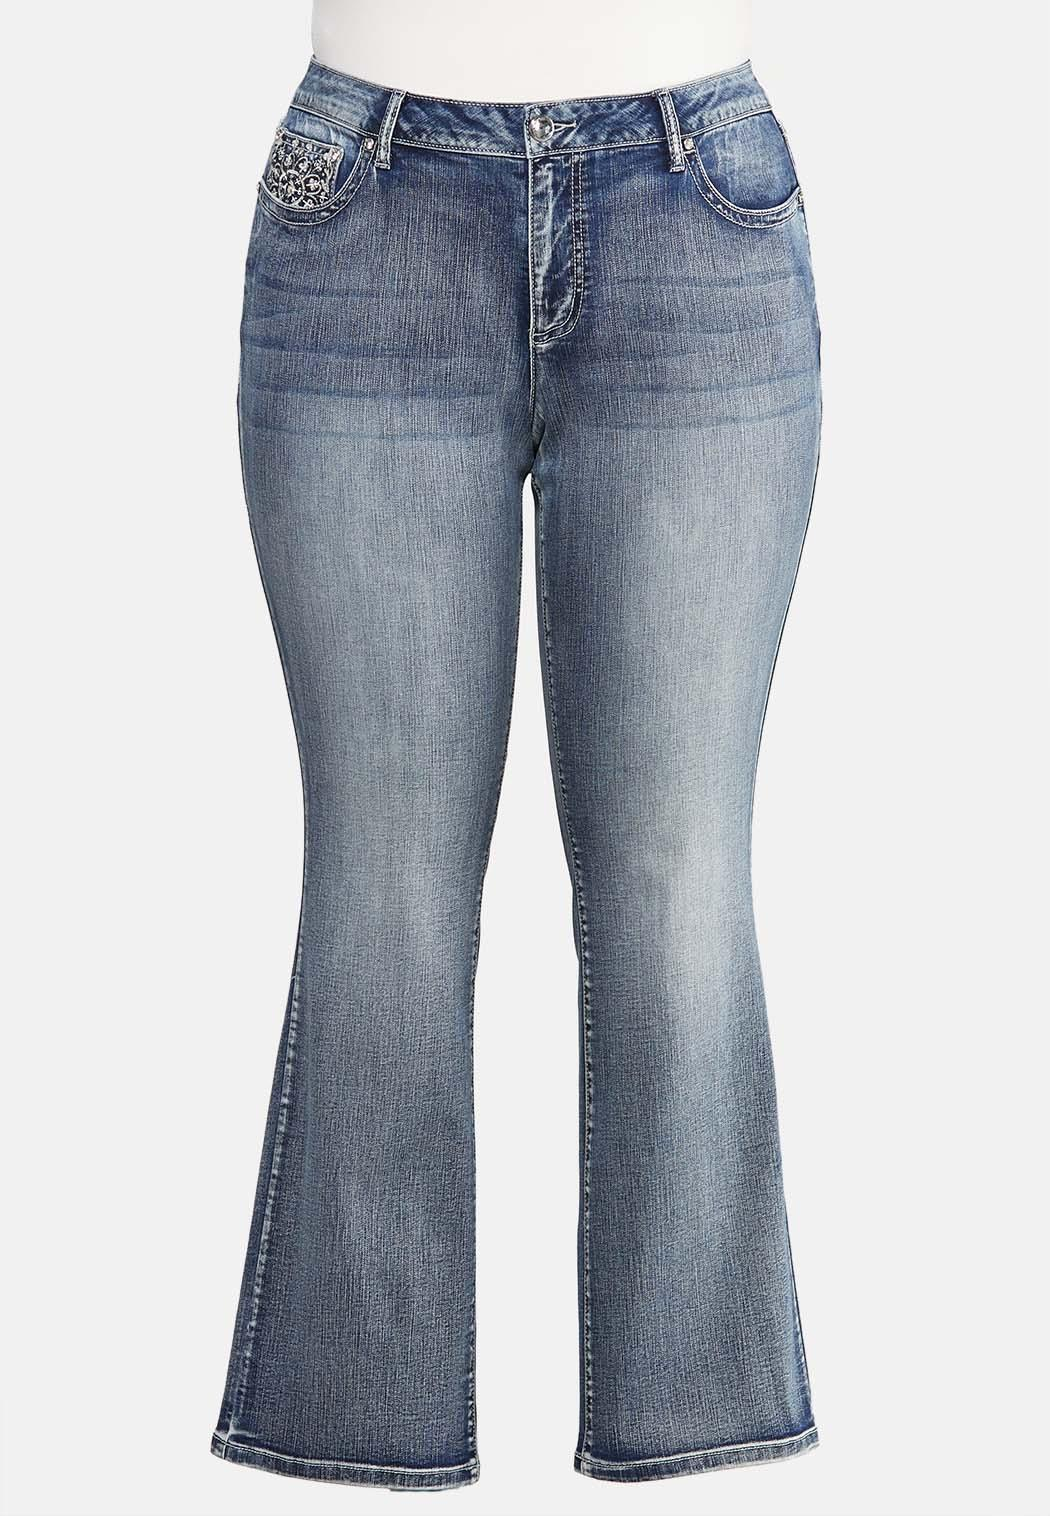 Plus Extended Curvy Floral Studded Jeans (Item #43942871)